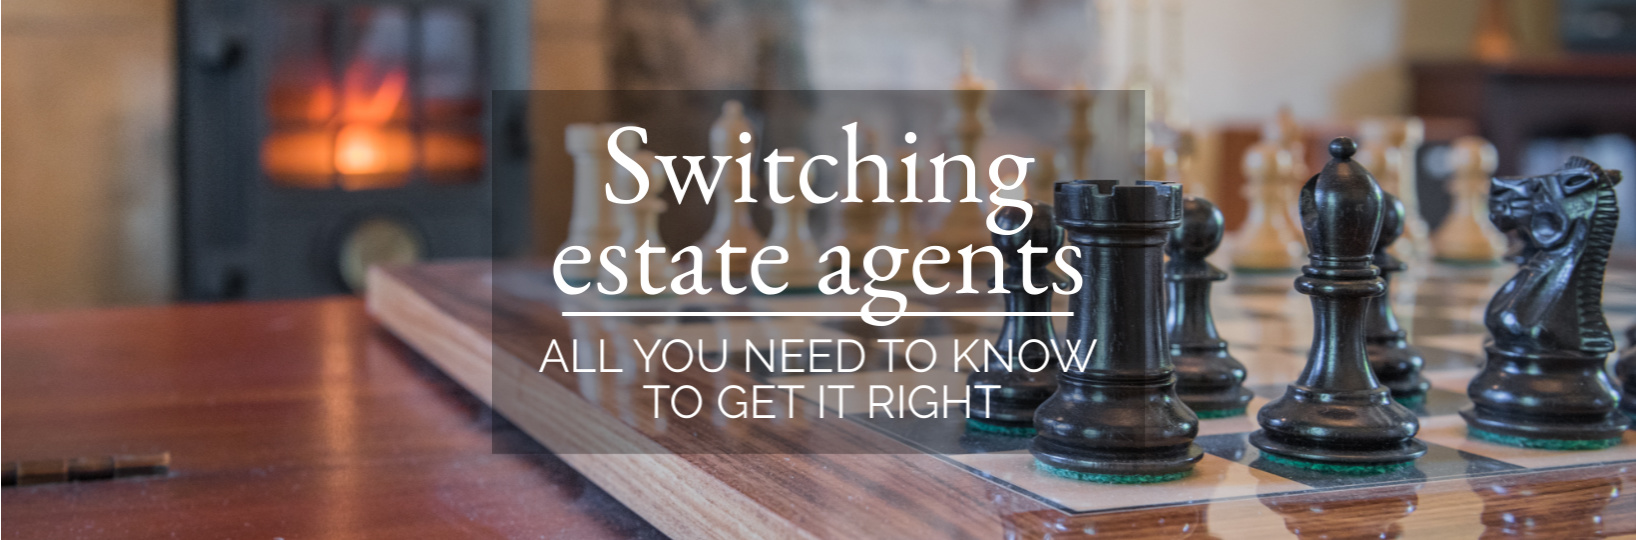 facebook-cover-art-switching-estate-agents